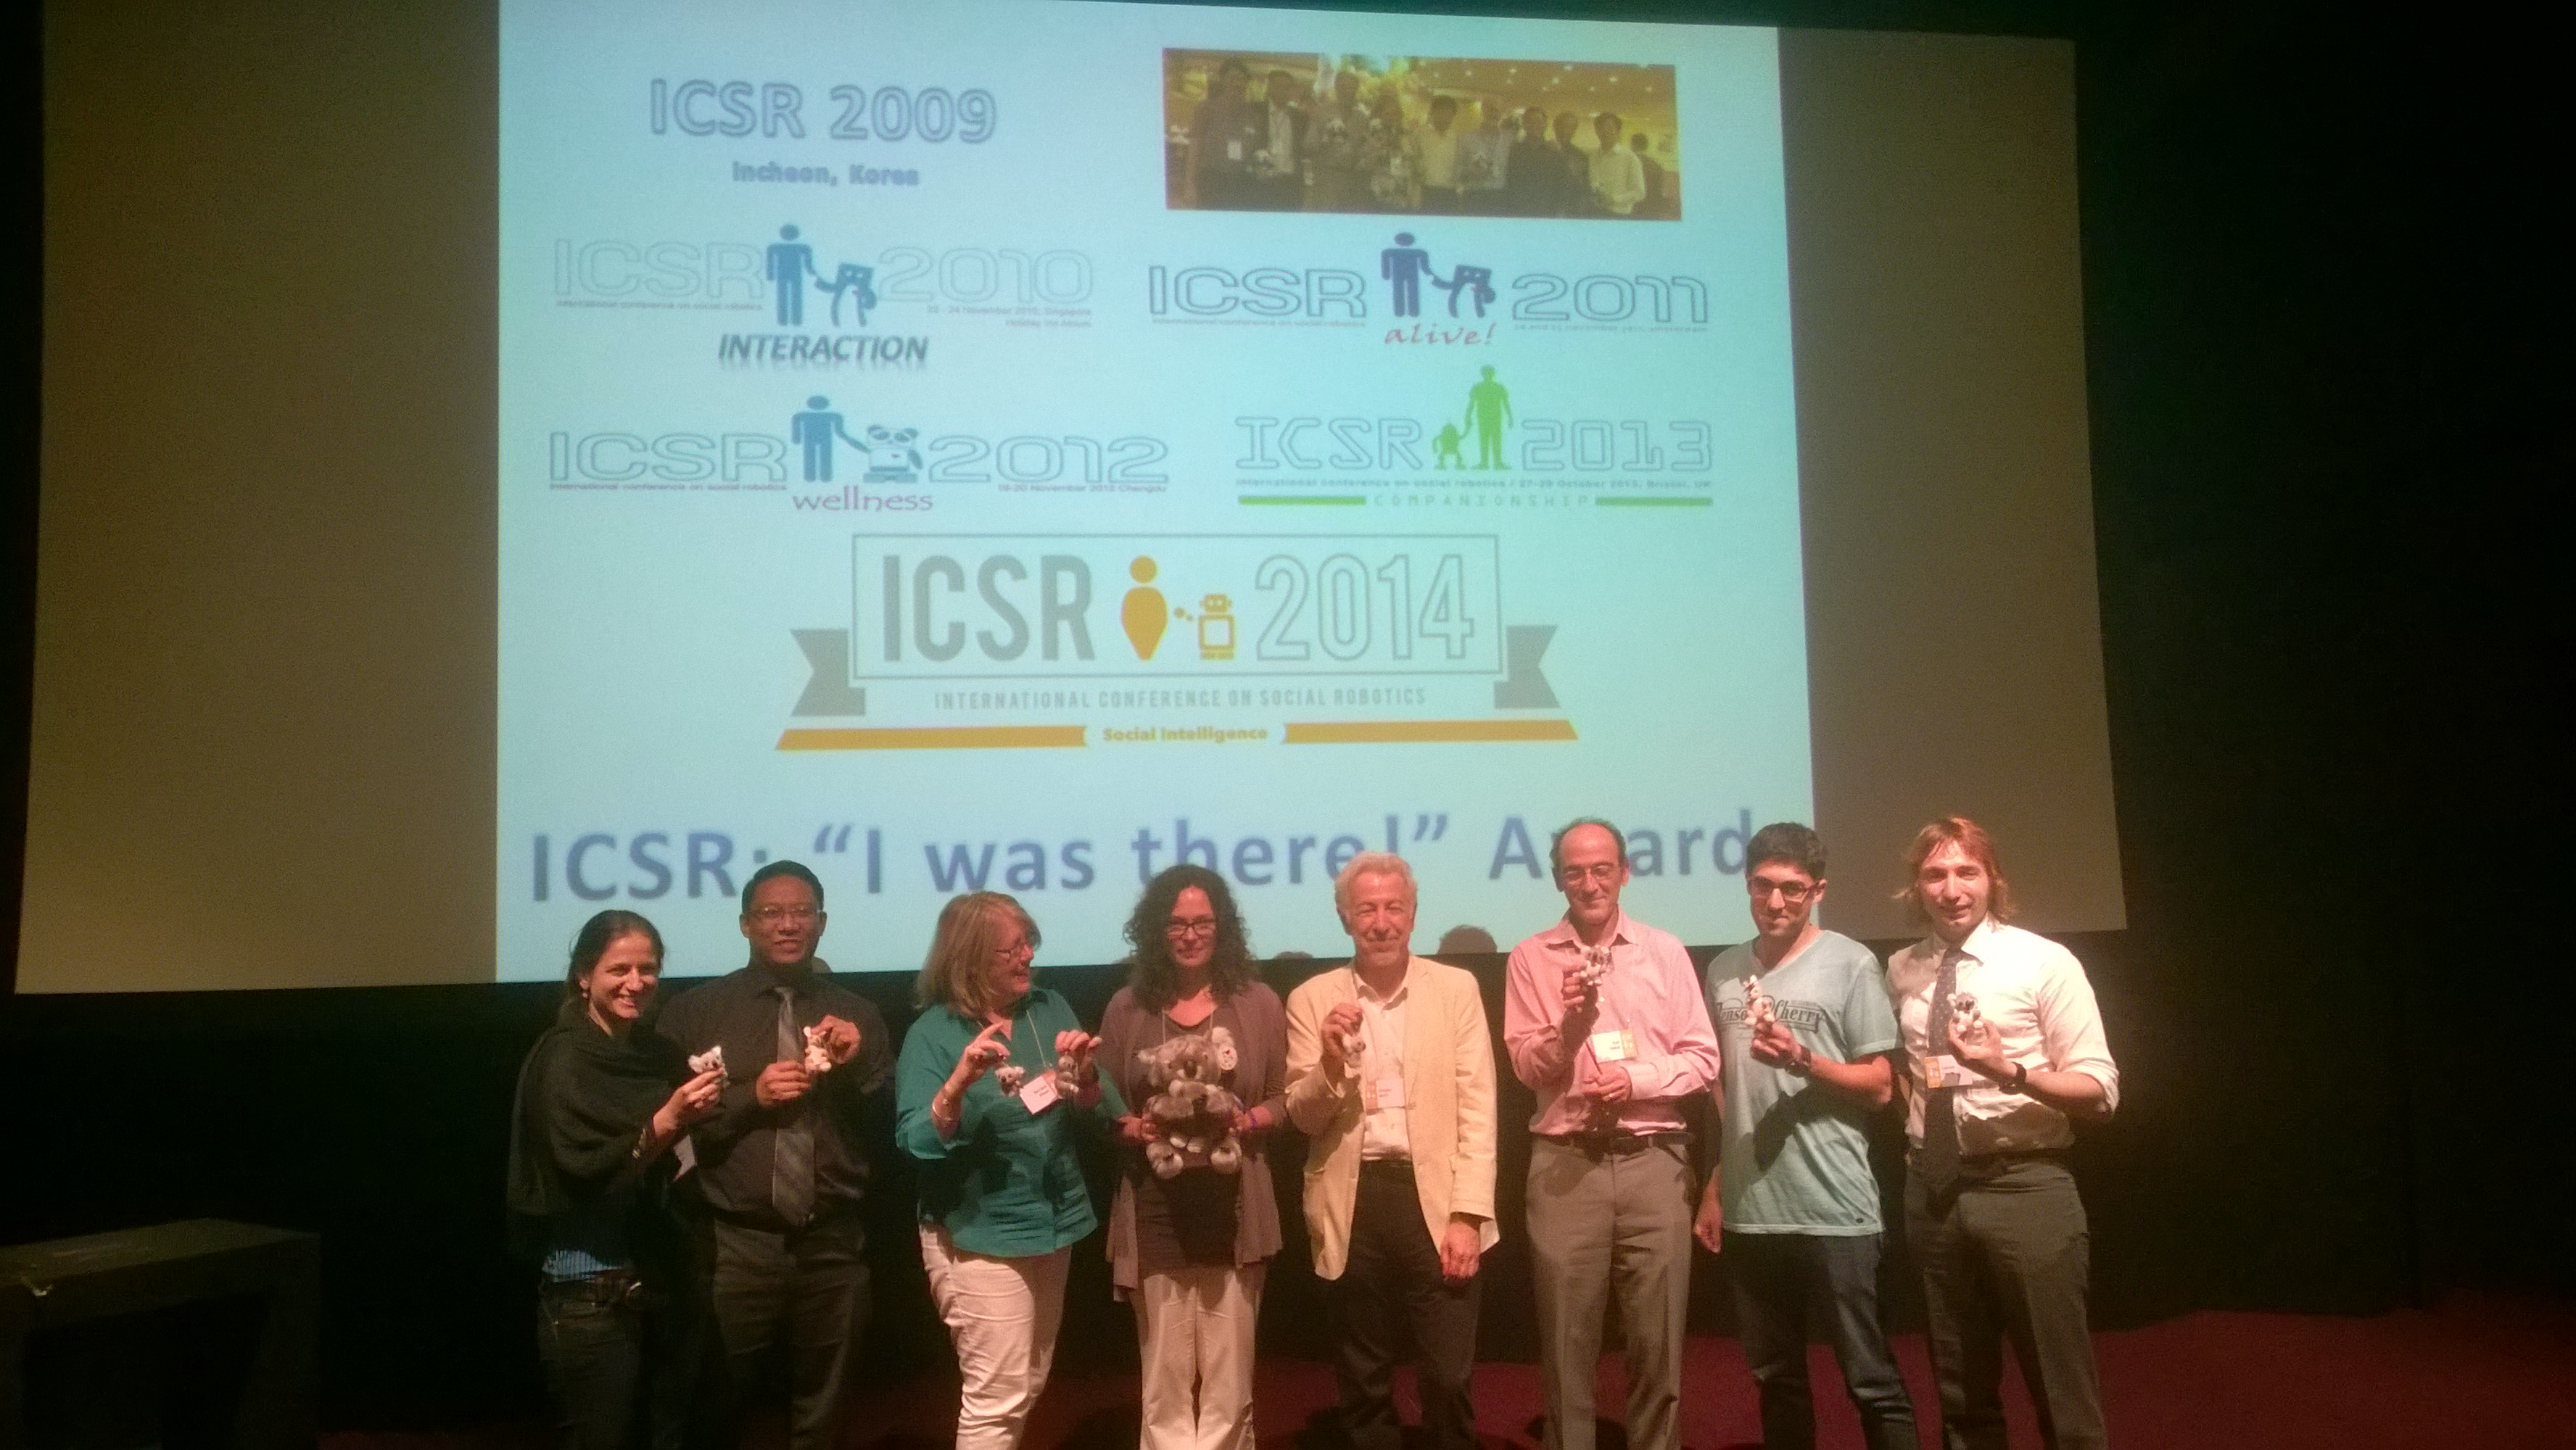 ICSR: We were there!